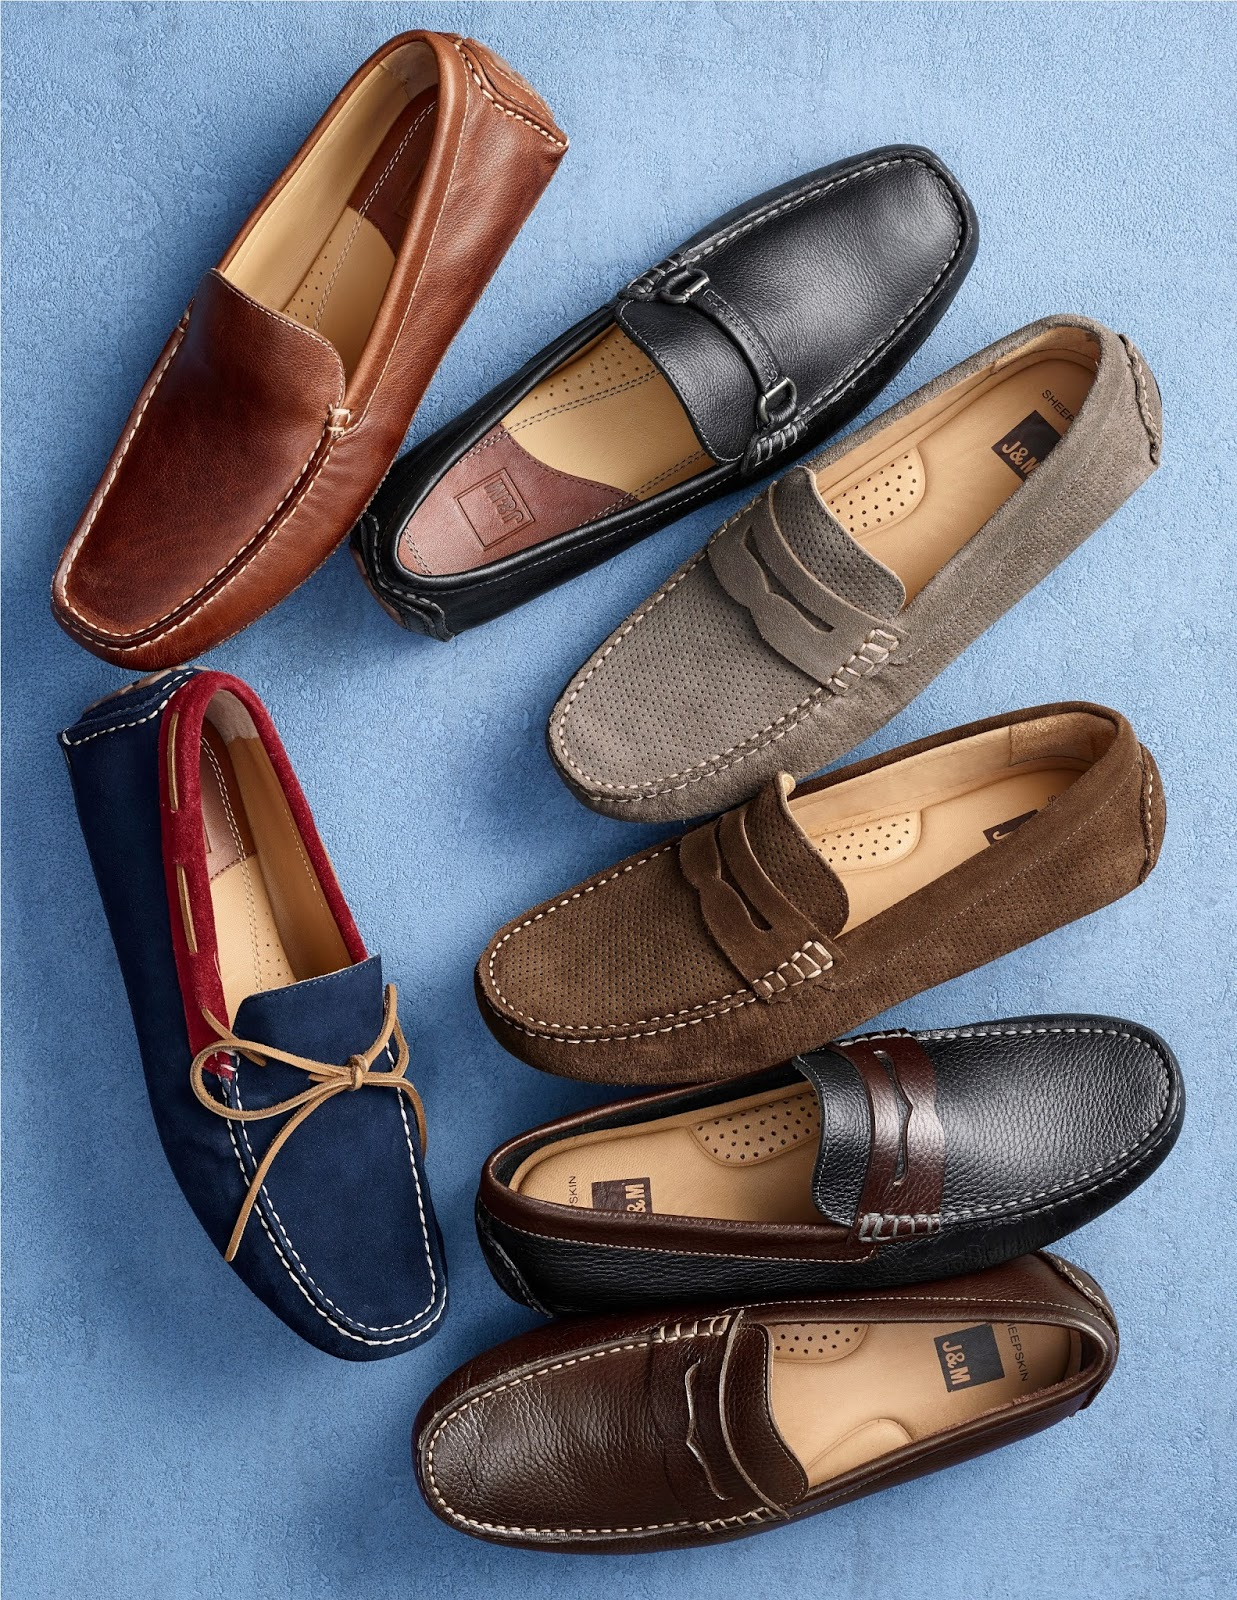 MENS FASHION  Johnston   Murphy unveils Its Suede Collection ... 5682be493d703